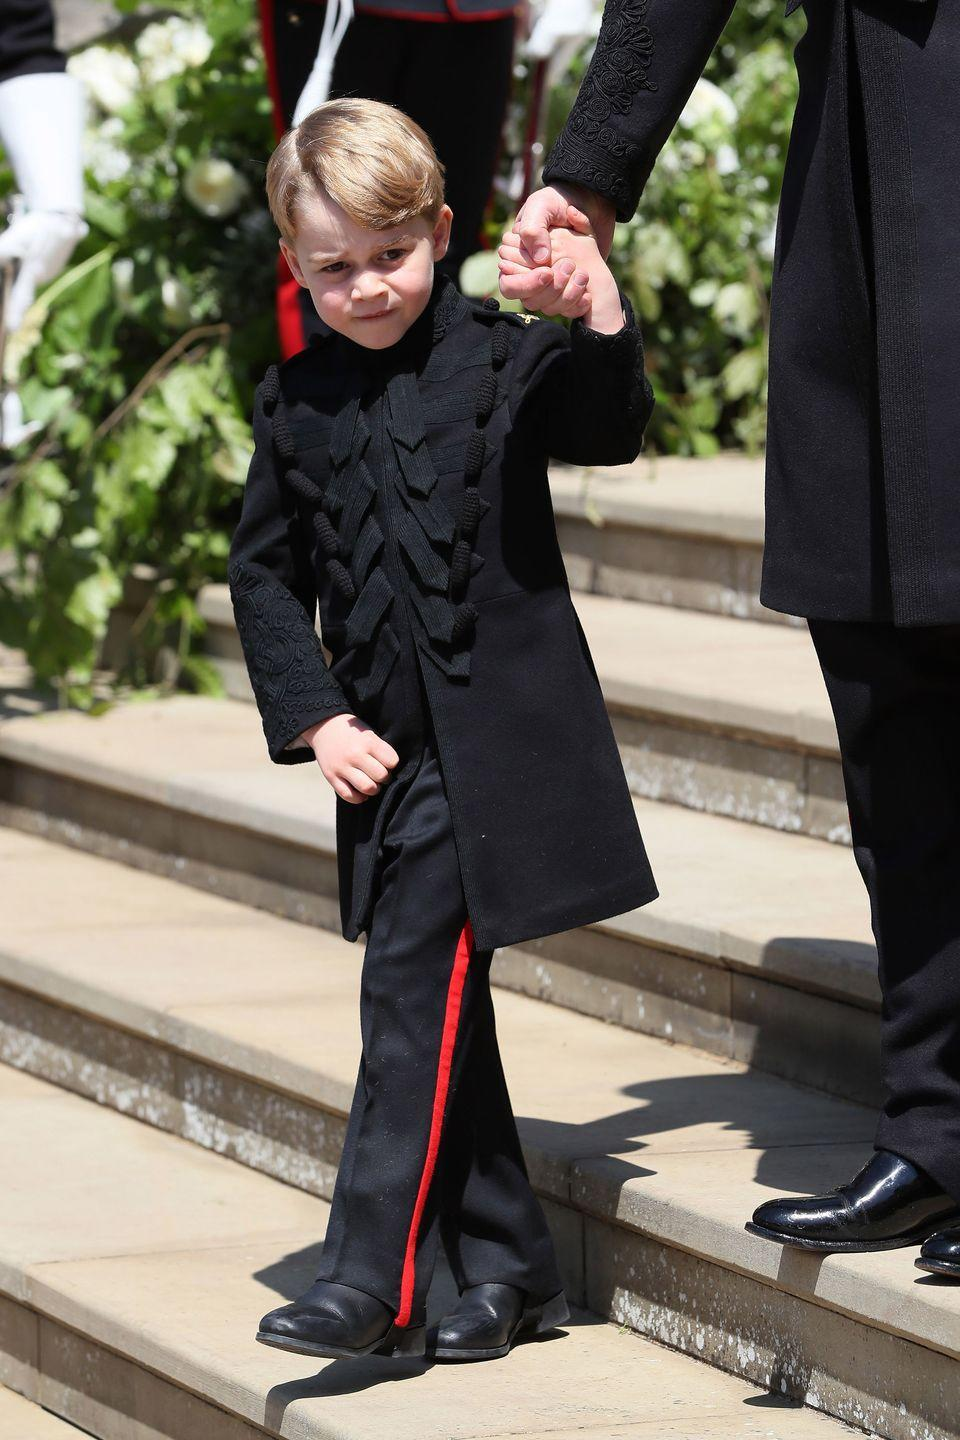 "<p>Prince George (who looks <a href=""https://www.harpersbazaar.com/celebrity/latest/a20115051/prince-george-princess-charlotte-wave-royal-wedding/"" rel=""nofollow noopener"" target=""_blank"" data-ylk=""slk:a lot less amused"" class=""link rapid-noclick-resp"">a lot less amused</a> than Princess Charlotte) also joins Prince Harry and Meghan Markle's royal nuptials, wearing a miniature version of the Blues and Royals frock coat that Prince Harry and Prince William wore for the big day.</p>"